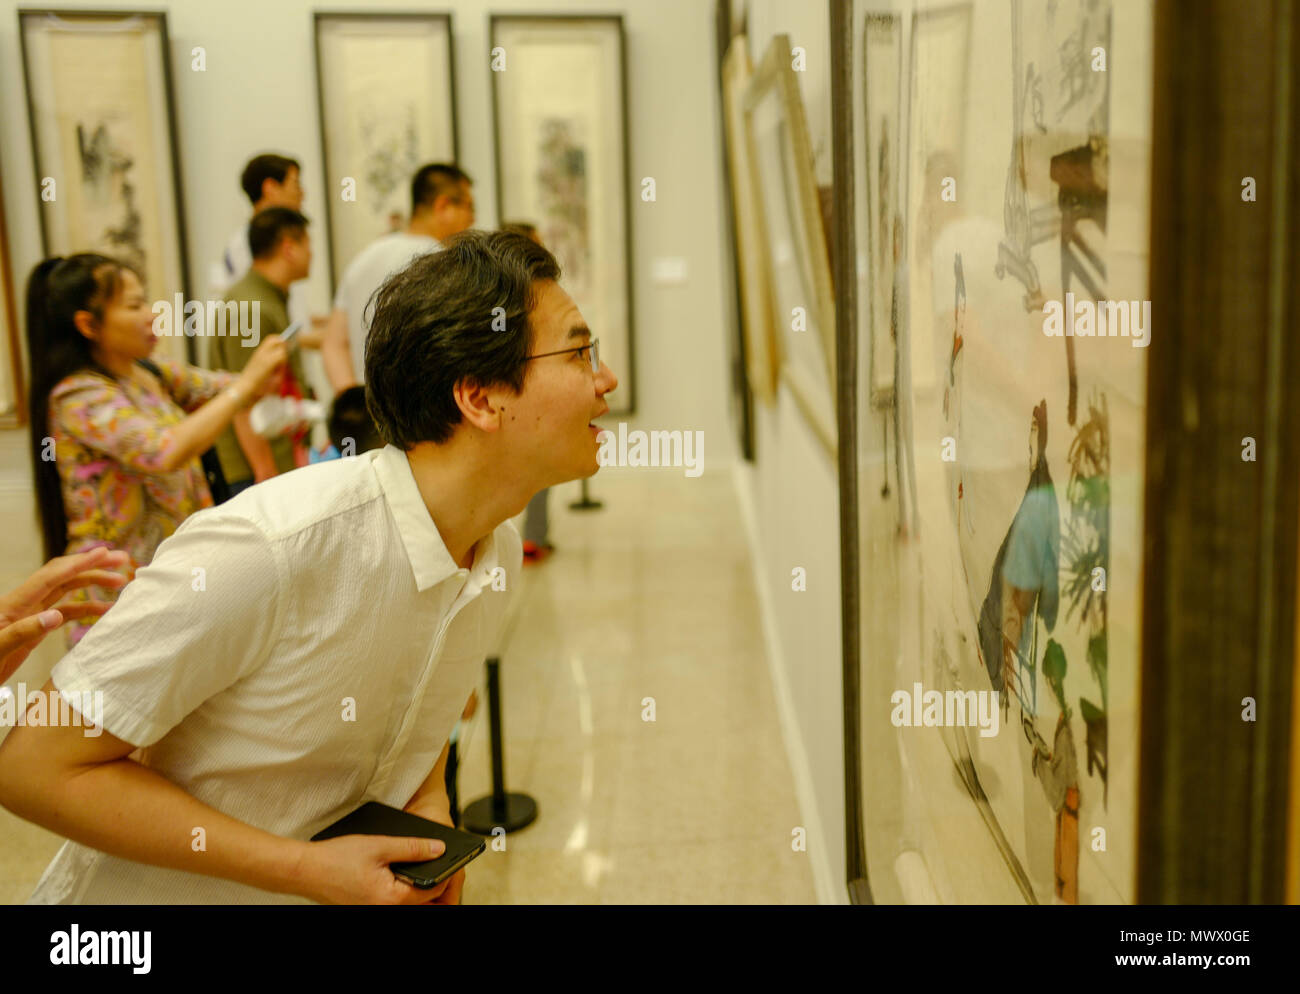 Beijing, China. 2nd June, 2018. Visitors view exhibits during the 'Talent Shining Like Bright Stars -- Academic Invitation Exhibition of Jiangxi Art Works in Beijing' in National Art Museum of China in Beijing, capital of China, June 2, 2018. Credit: Liu Chan/Xinhua/Alamy Live News - Stock Image